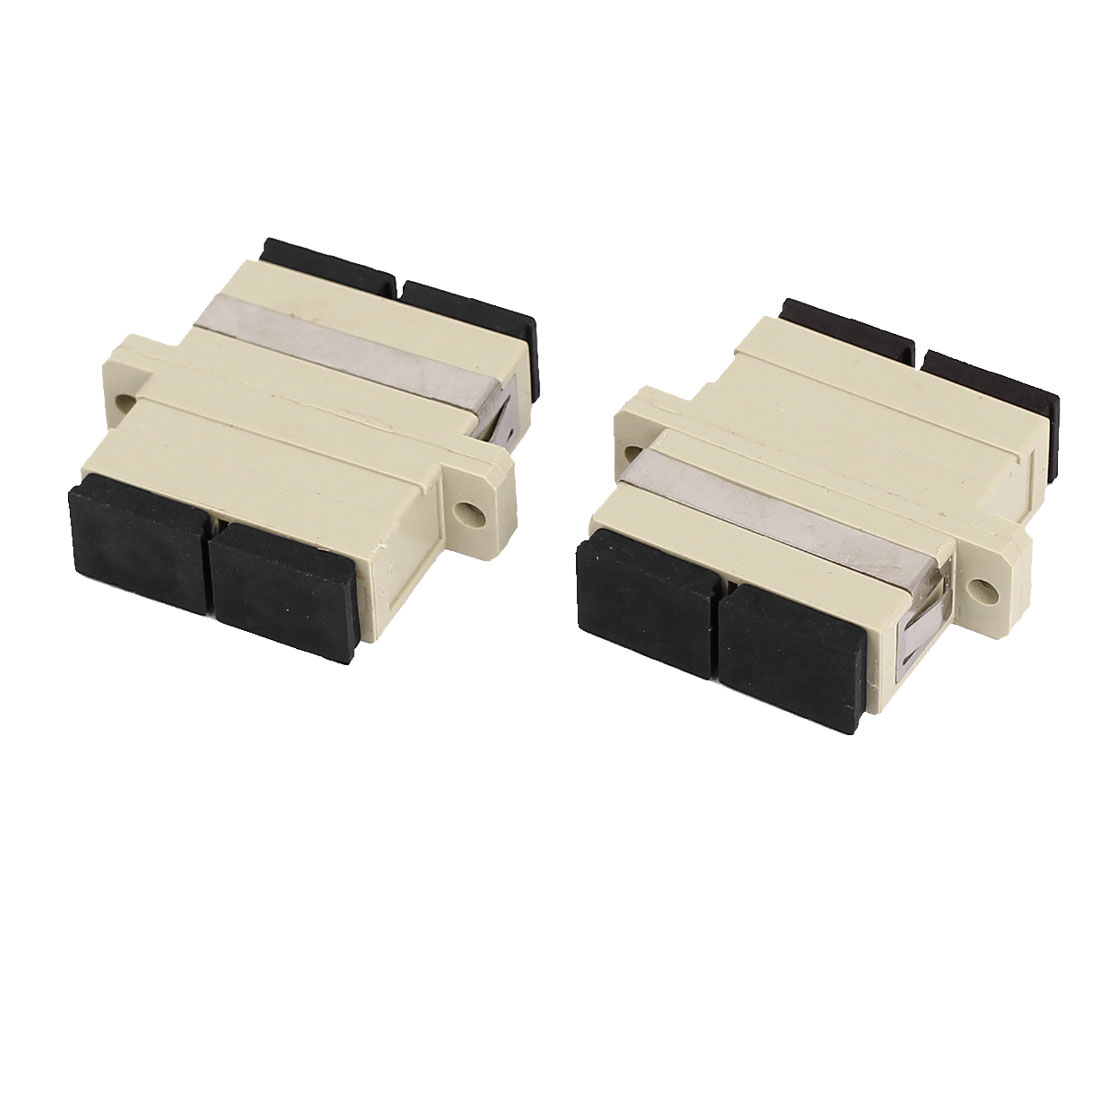 SC/SC Duplex Multimode Flange Fiber Optical Connector Adapter Coupler 2Pcs